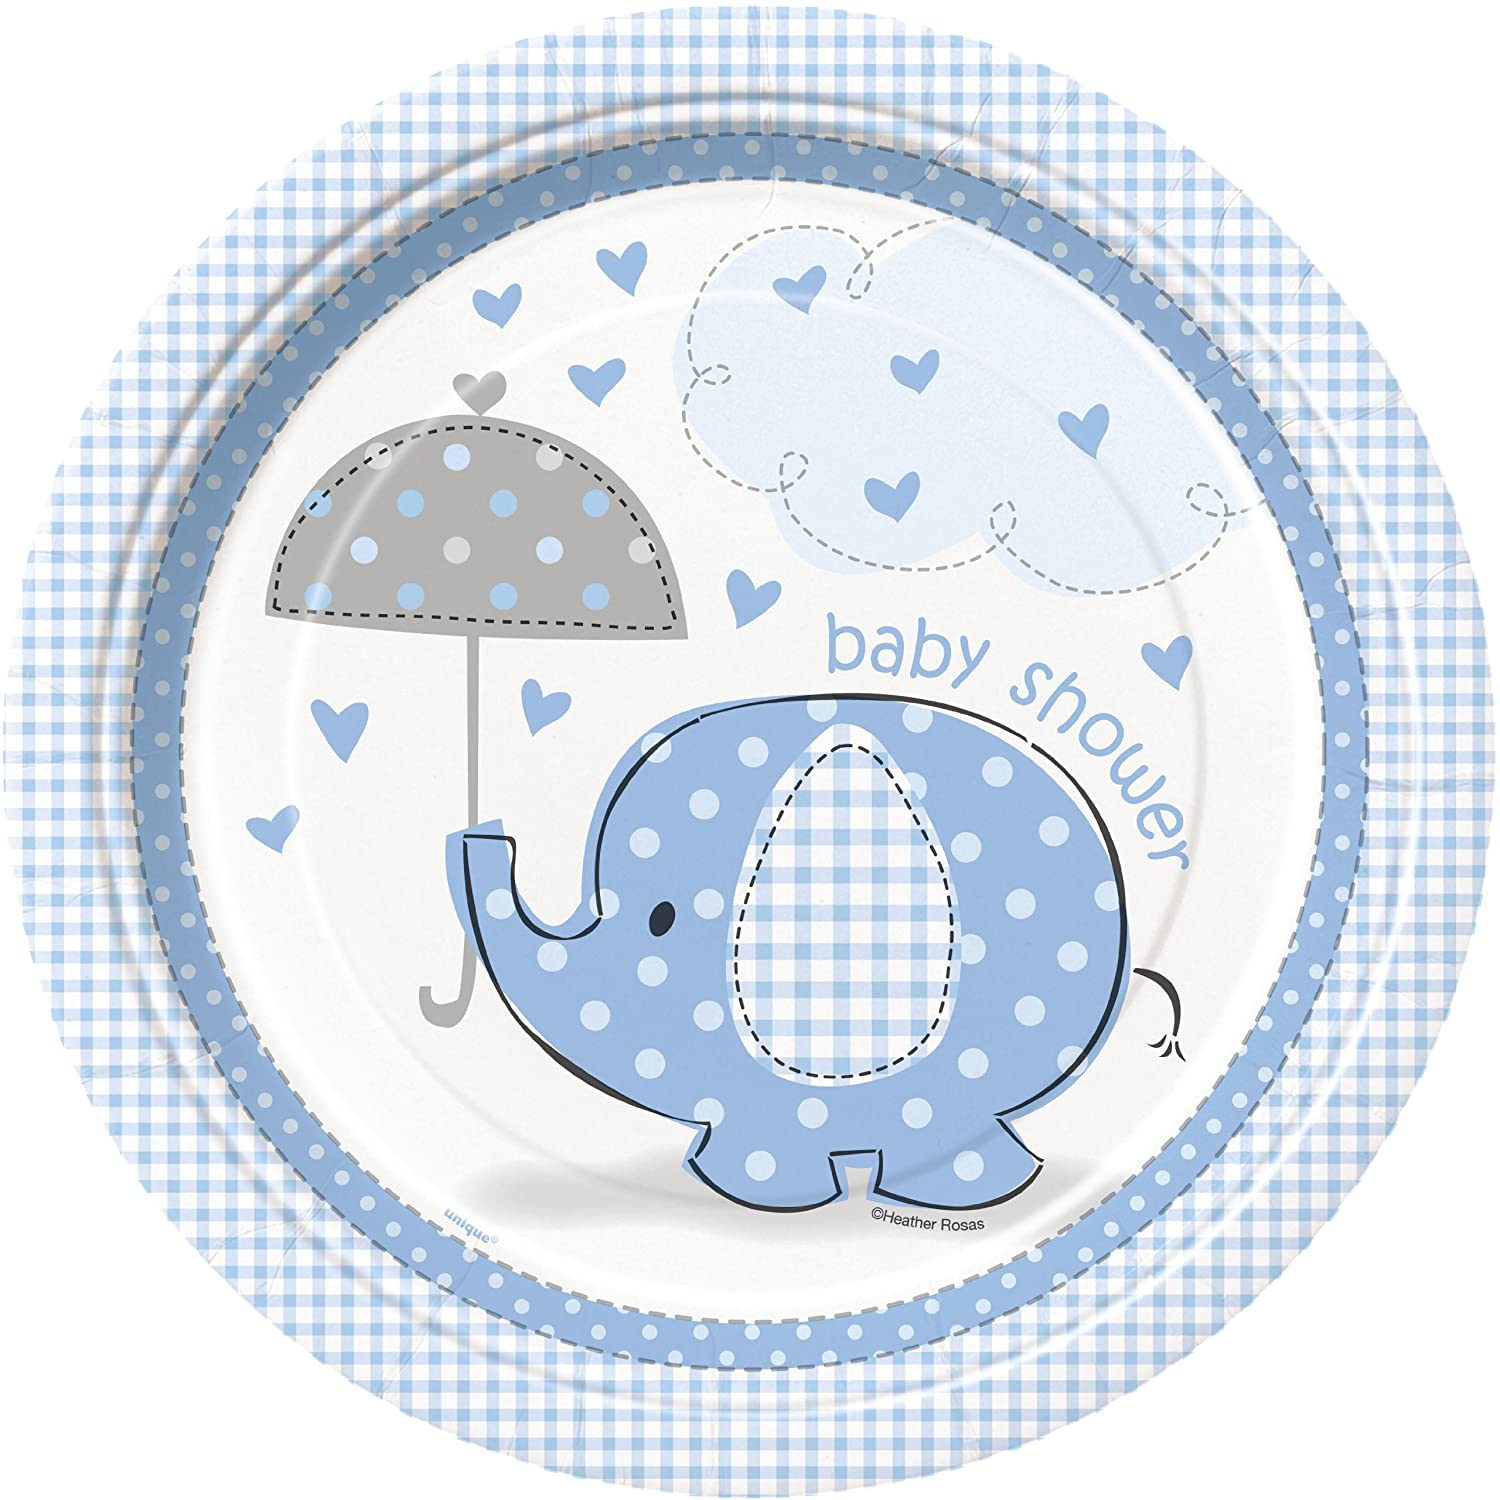 diaper s facebook cake diapercakesbydiana elephant shower pin com baby themed showers boy